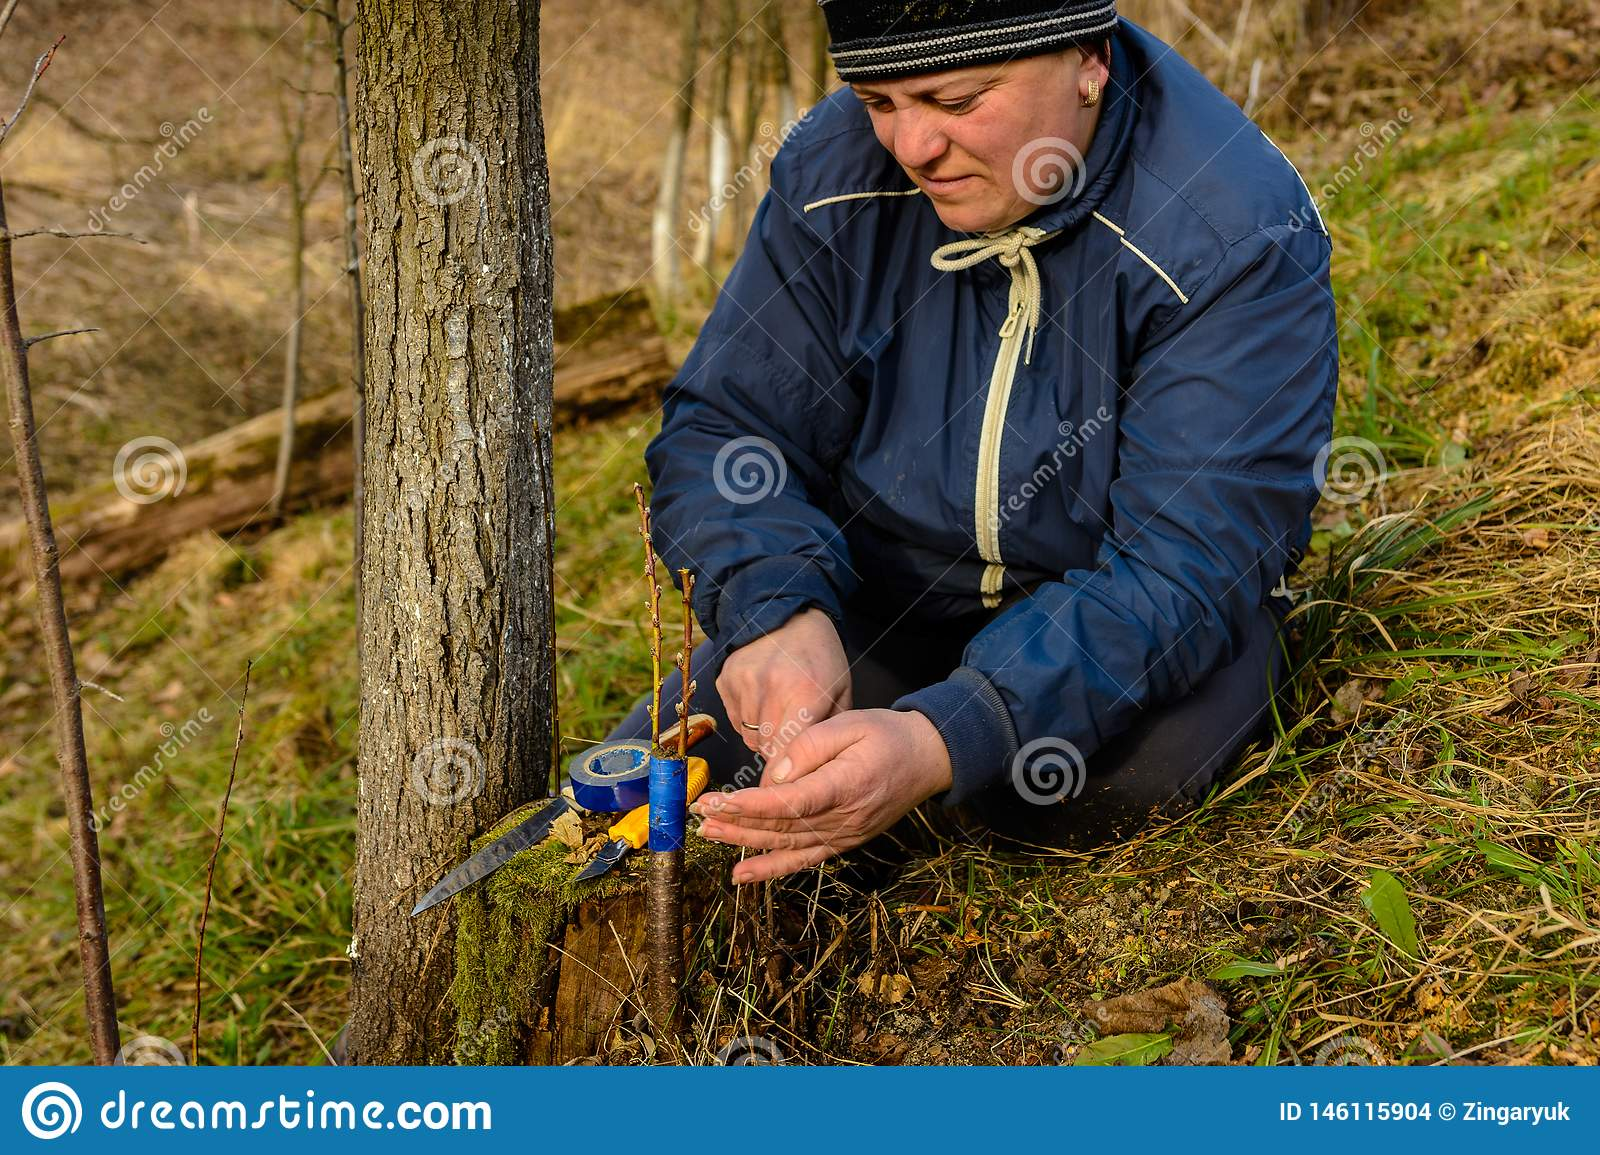 Woman wraps a graft tree with an insulating tape in the garden to detain the damp in it in close-up